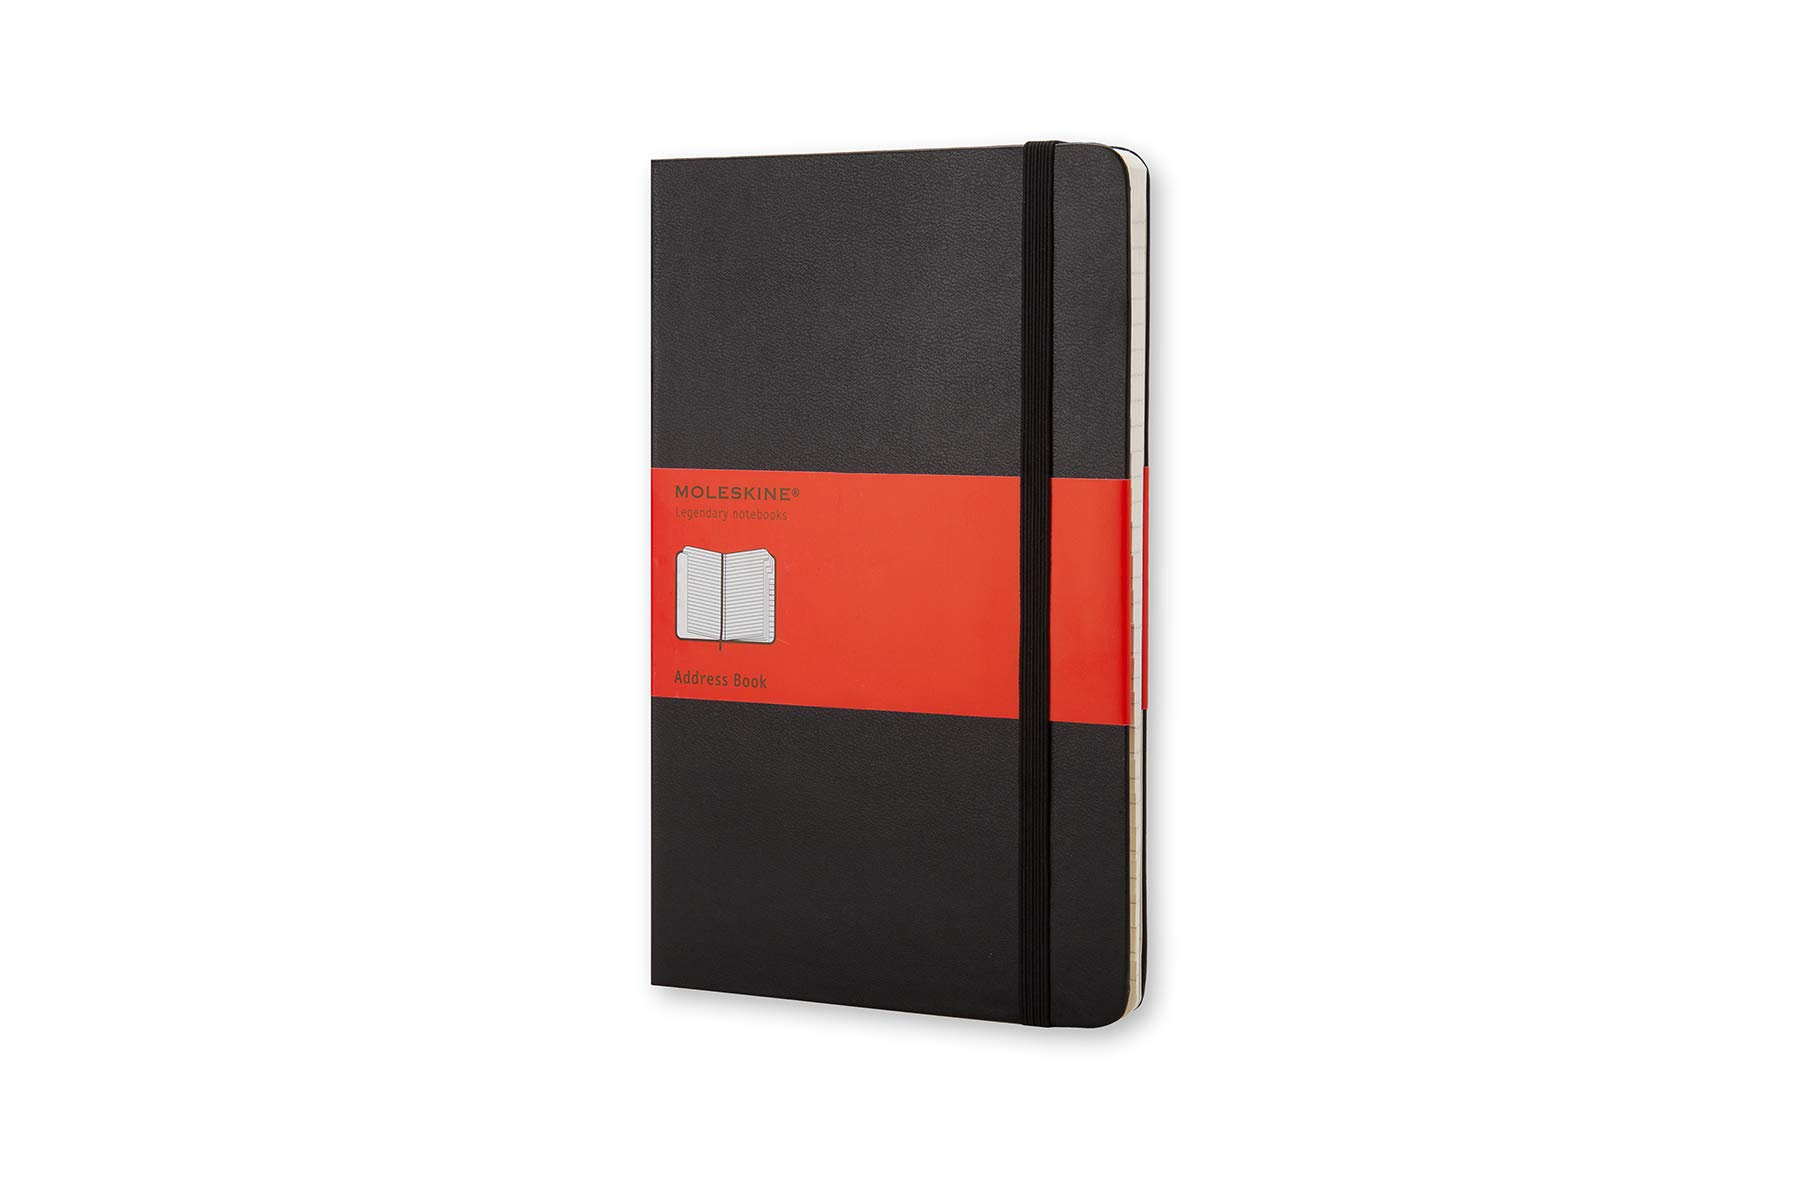 Moleskine Classic Hard Cover Address Book, Pocket Size (3.5.